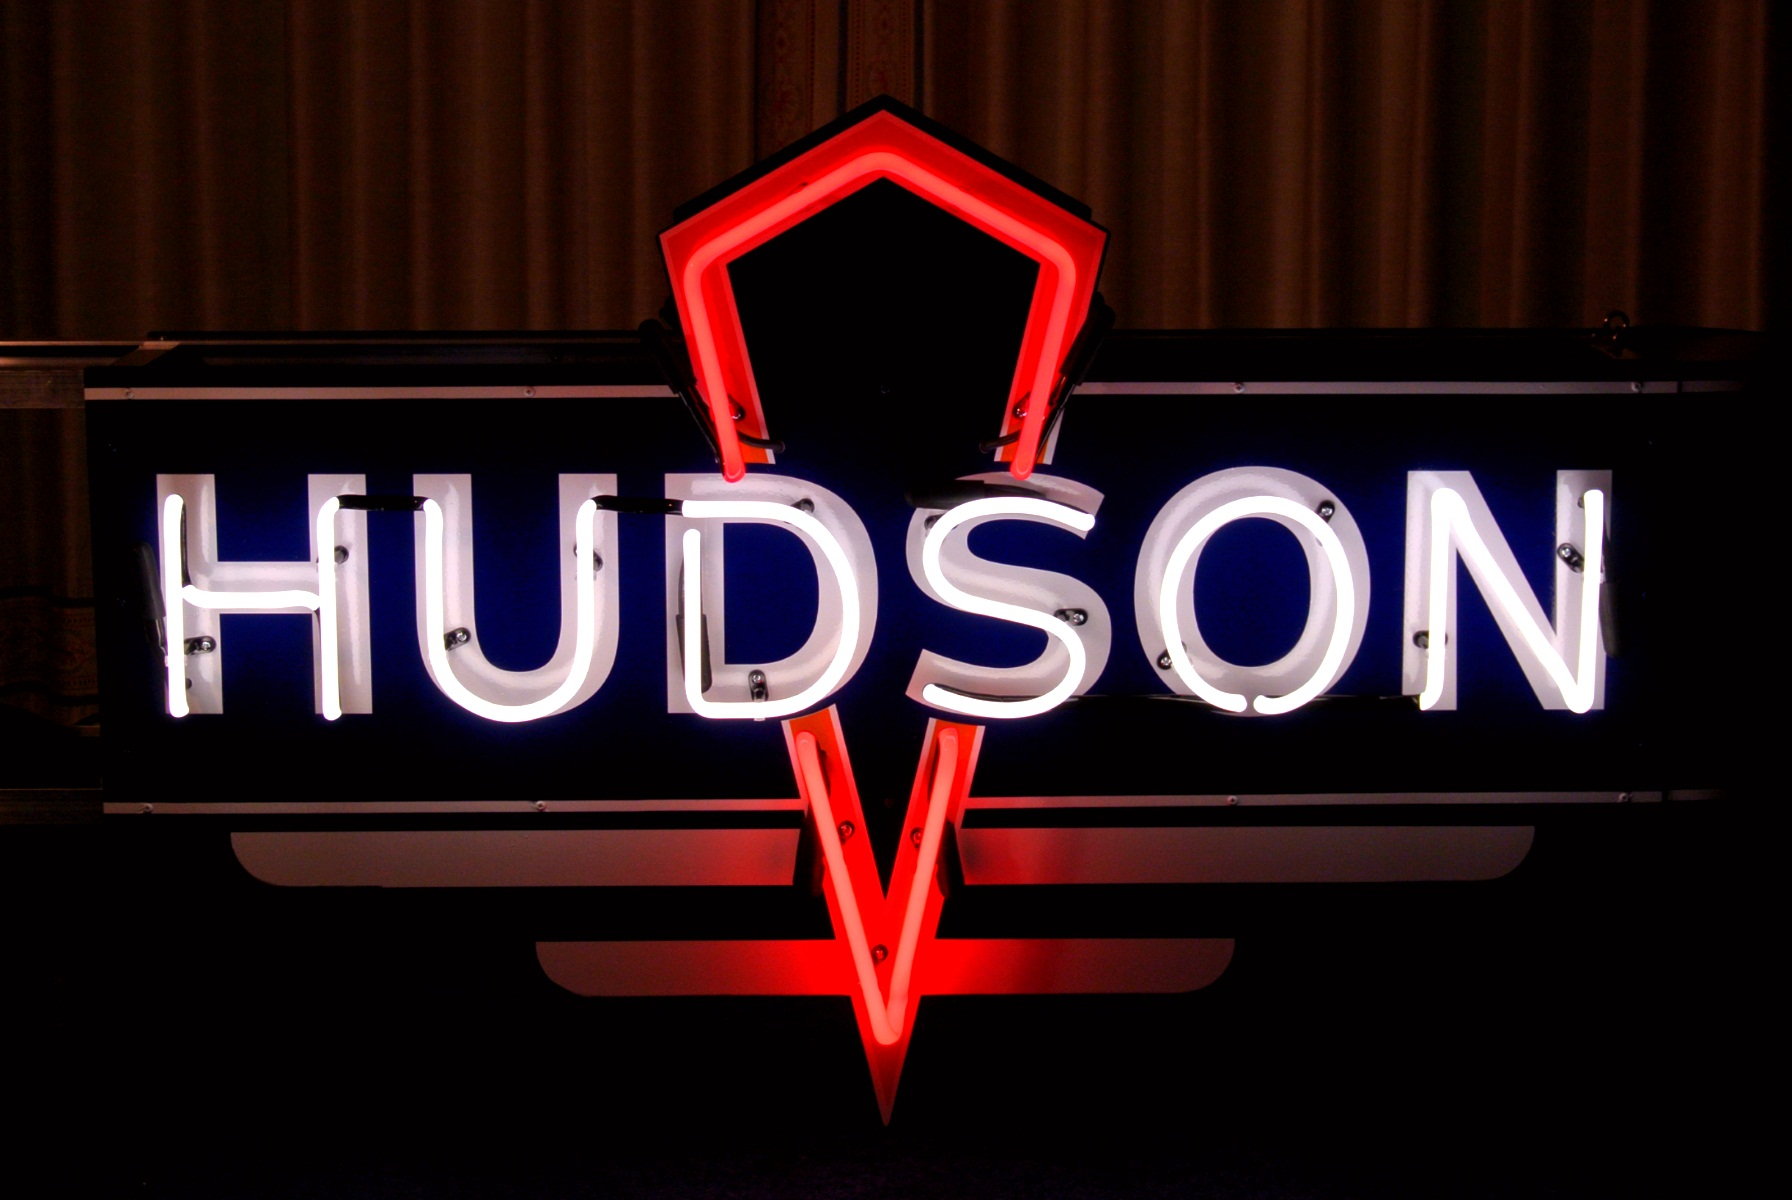 Double sided Hudson Car Dealership Neon Sign by John Barton - BartonNeonMagic.com